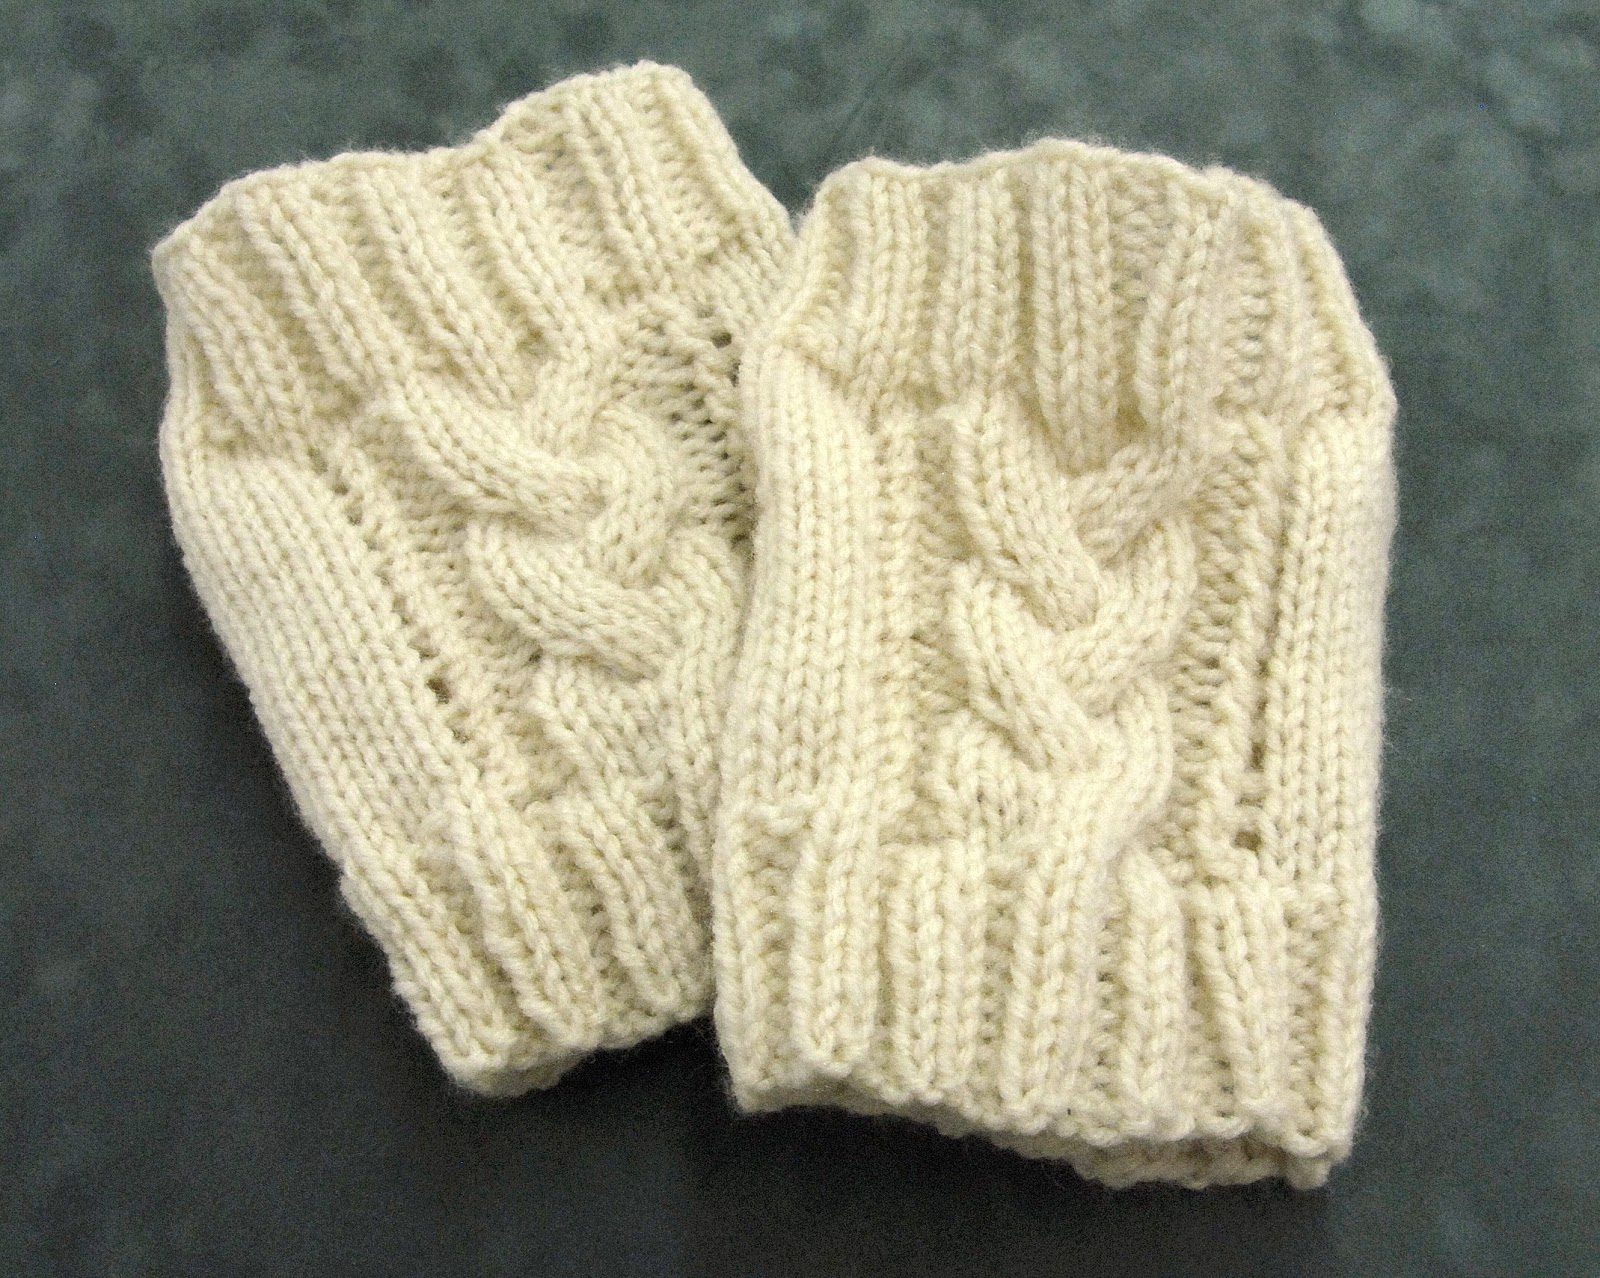 Free Knitting Pattern For Boot Cuffs : Ben Franklin Crafts and Frame Shop, Monroe, WA: How to: Cable Knit Boot Cuffs